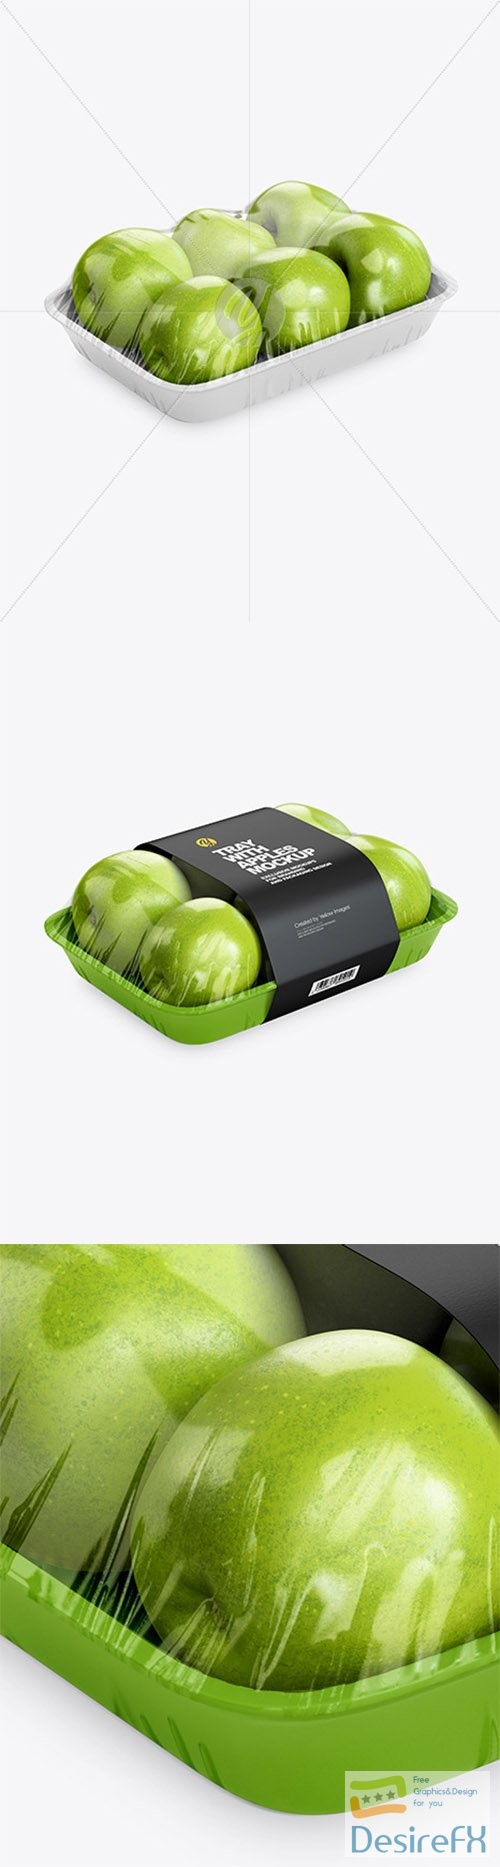 Tray with Green Apples Mockup 79257 TIF